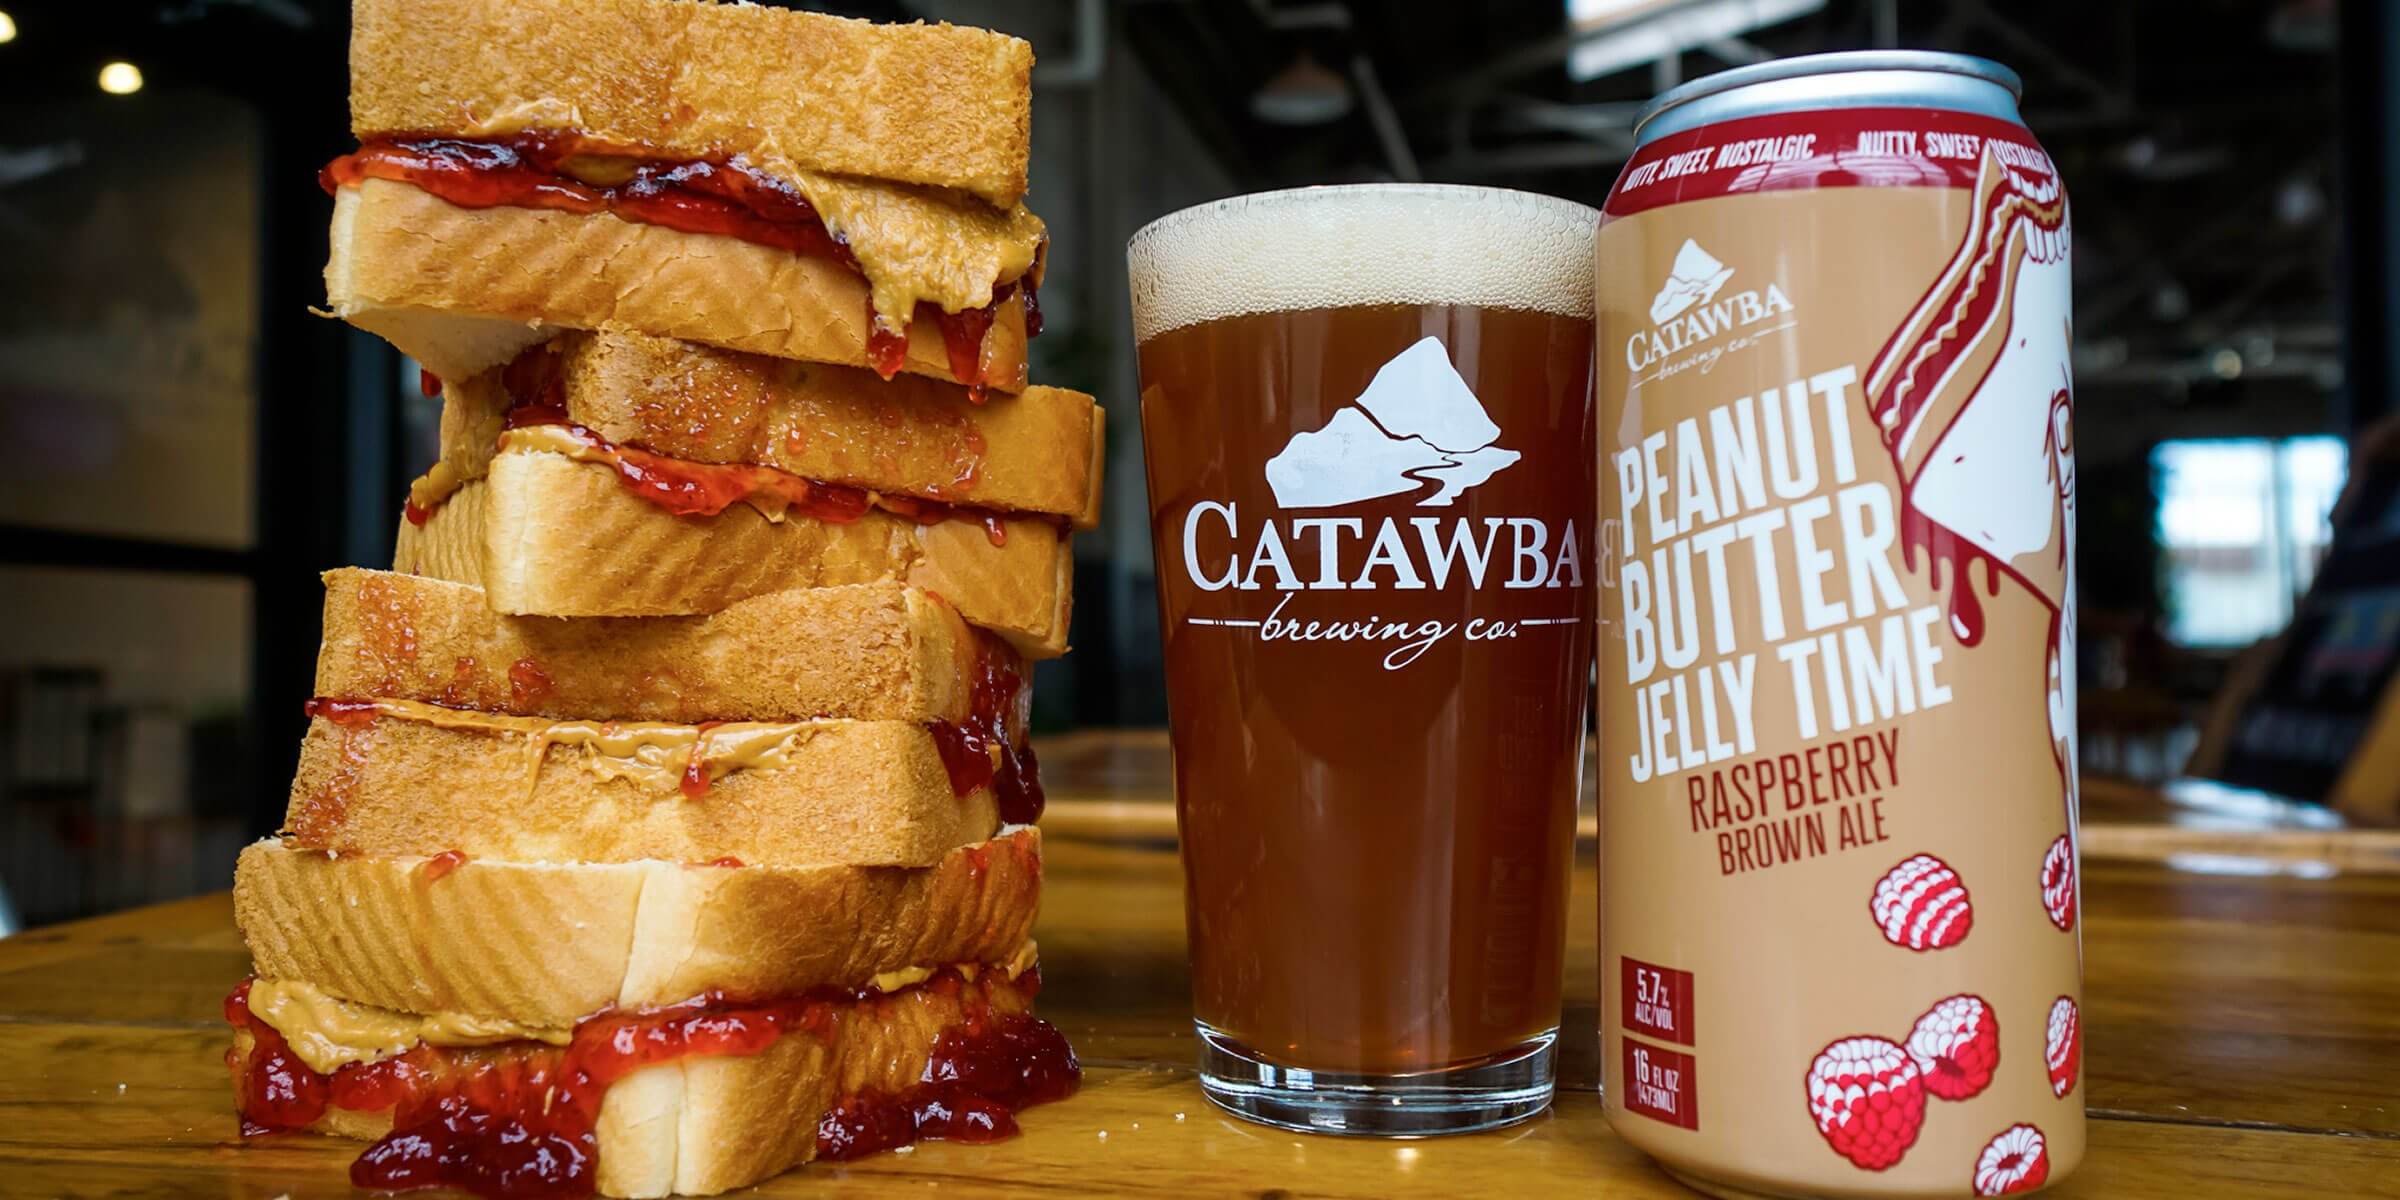 Catawba Brewing Co.'s legendary Peanut Butter Jelly Time peanut butter beer will make its annual return to the Catawba menu March 6th.